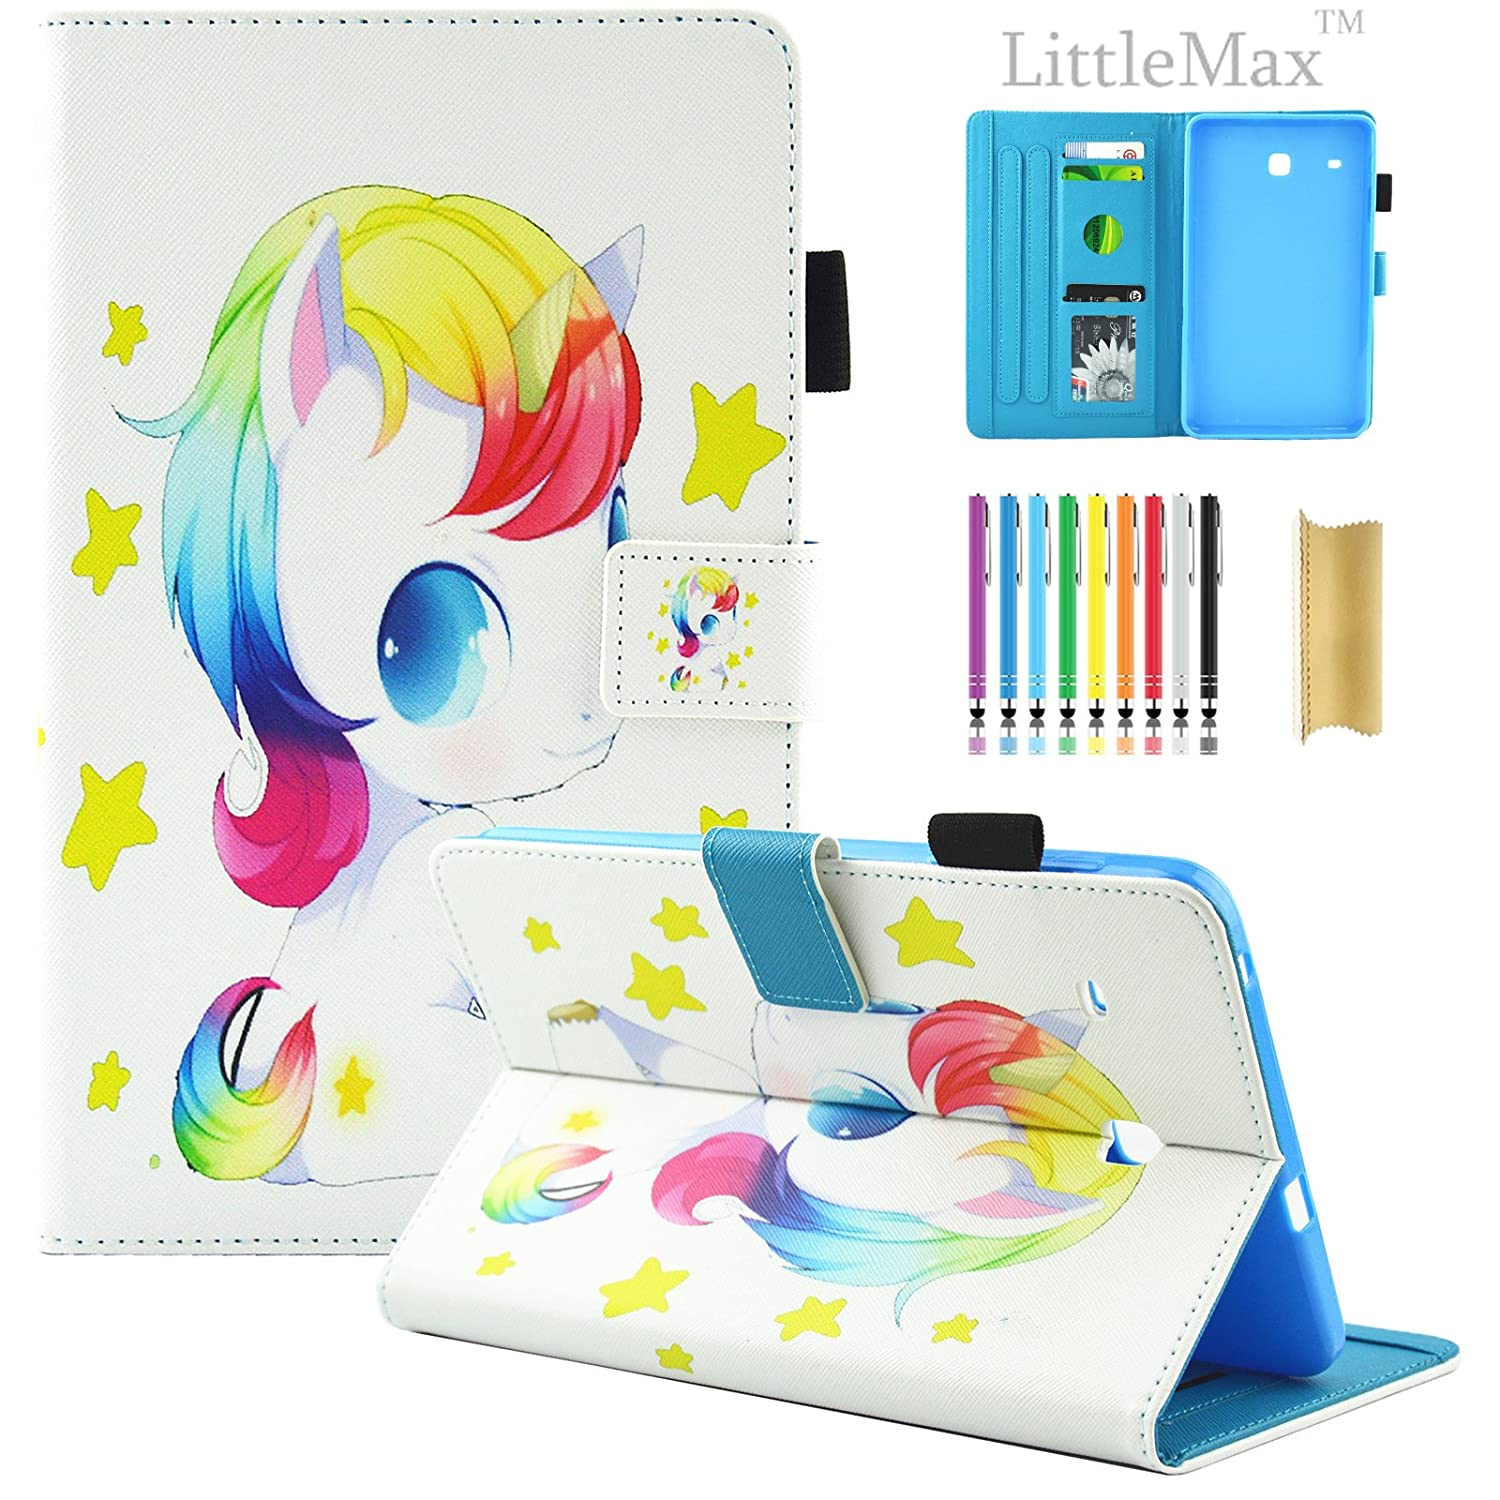 Galaxy Tab E 8.0 Case, LittleMax(TM) Ultra Slim Lightweight Smart Shell Standing Cover [Card Slots] for Samsung Galaxy Tab E 8.0-Inch SM-T375 / SM-T377 Tablet [Free Stylus Pen] - 03 Unicorn Baby